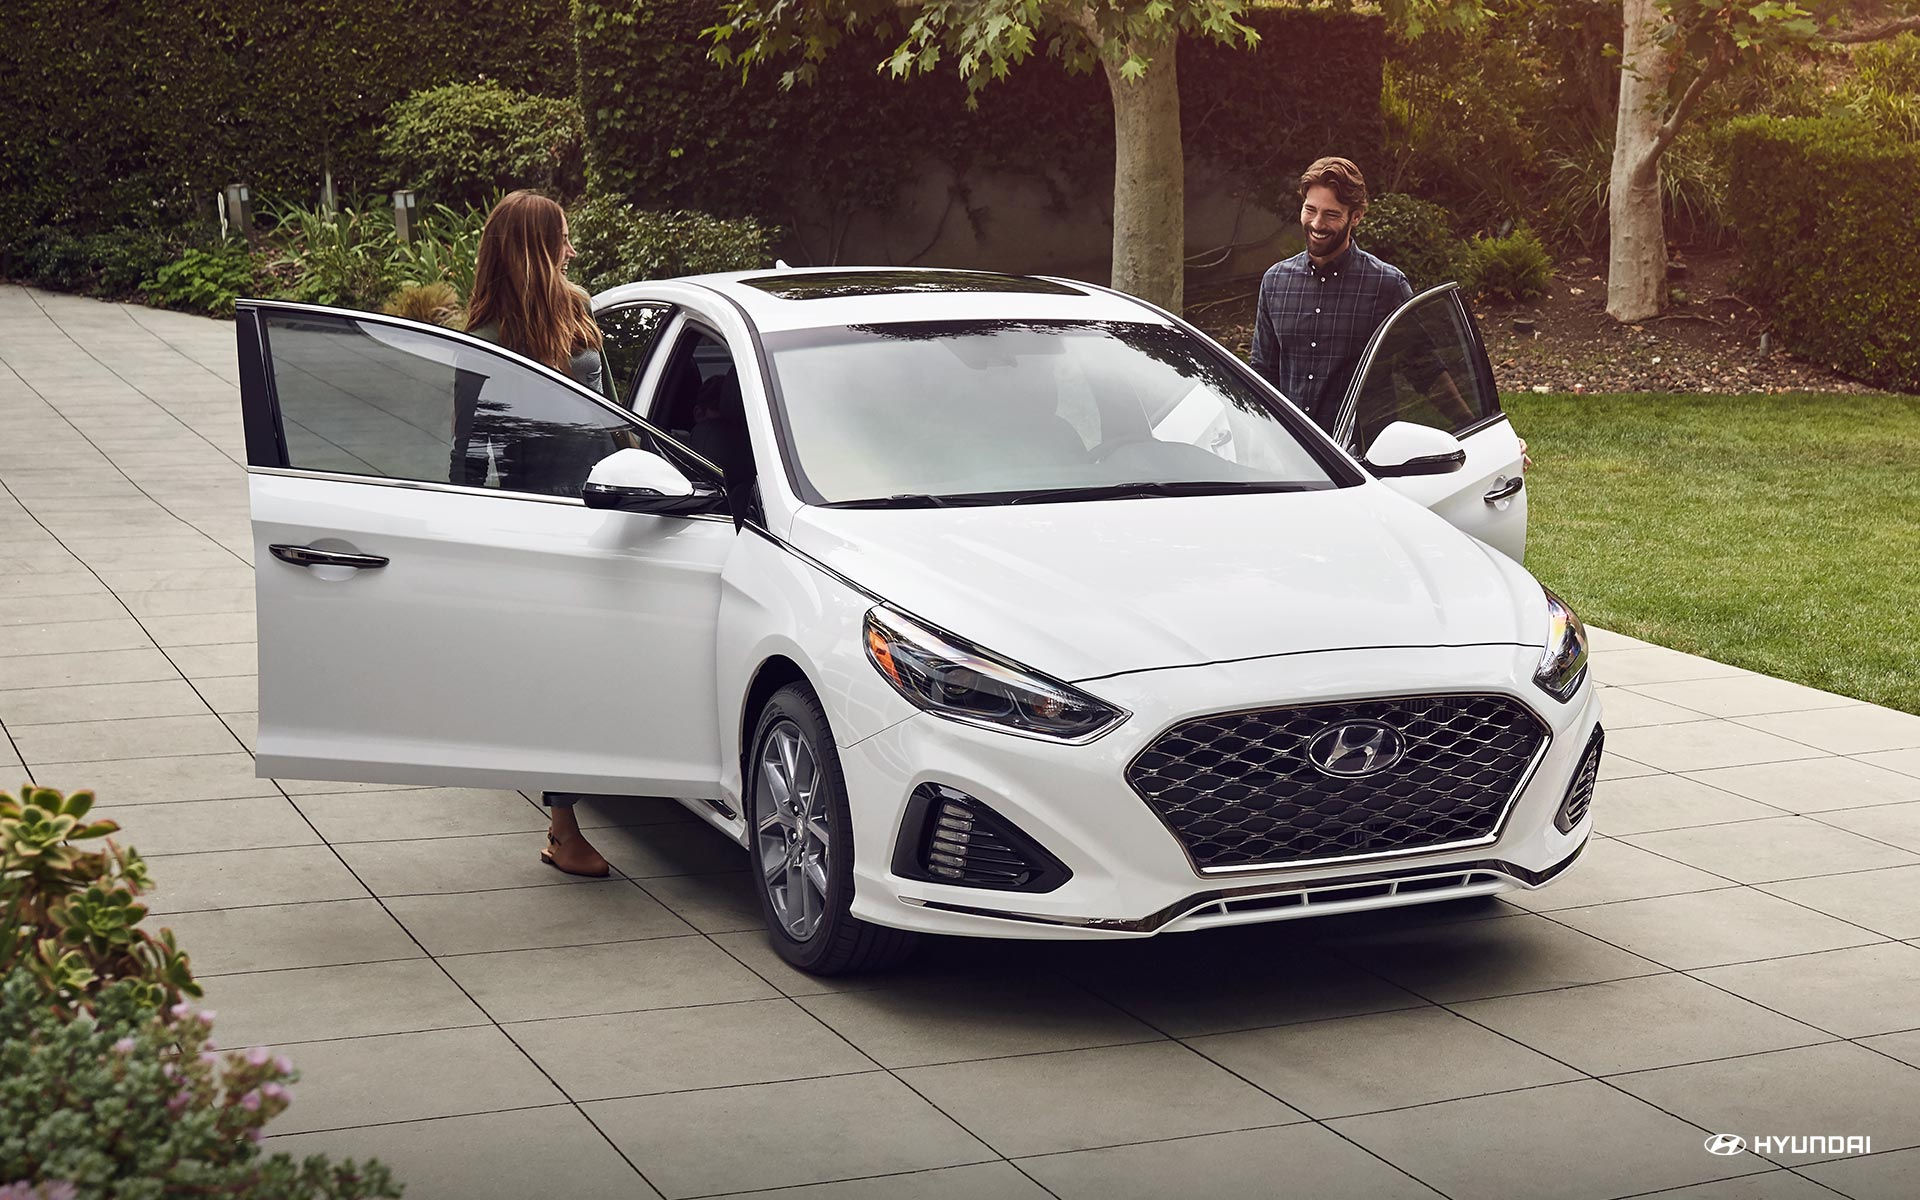 Great Hyundai Lease Deals near Manassas, VA